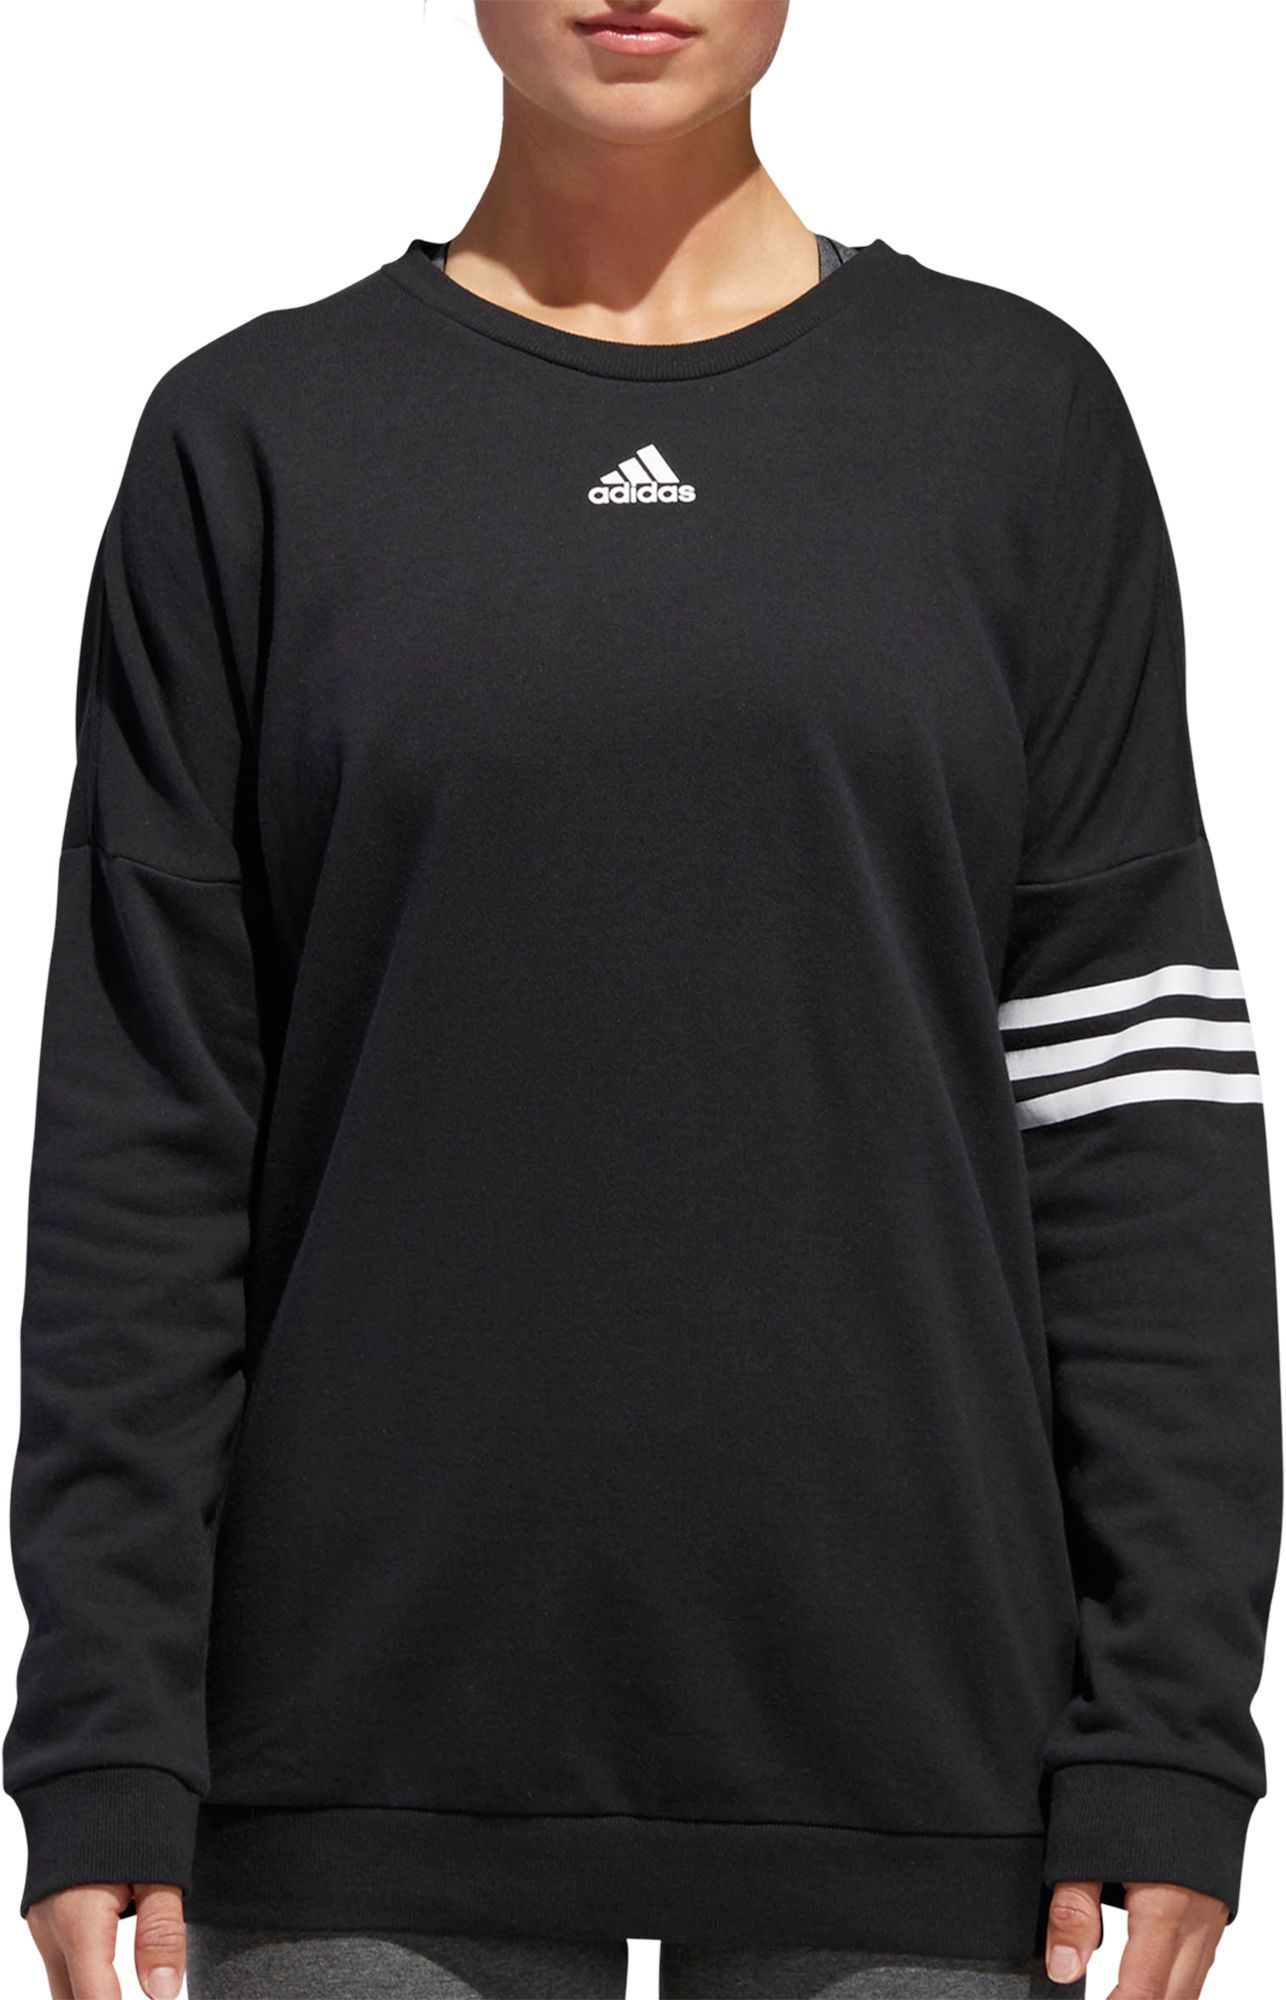 adidas Women s Athletics French Terry Crewneck Pullover ... 3a6d1ed10d